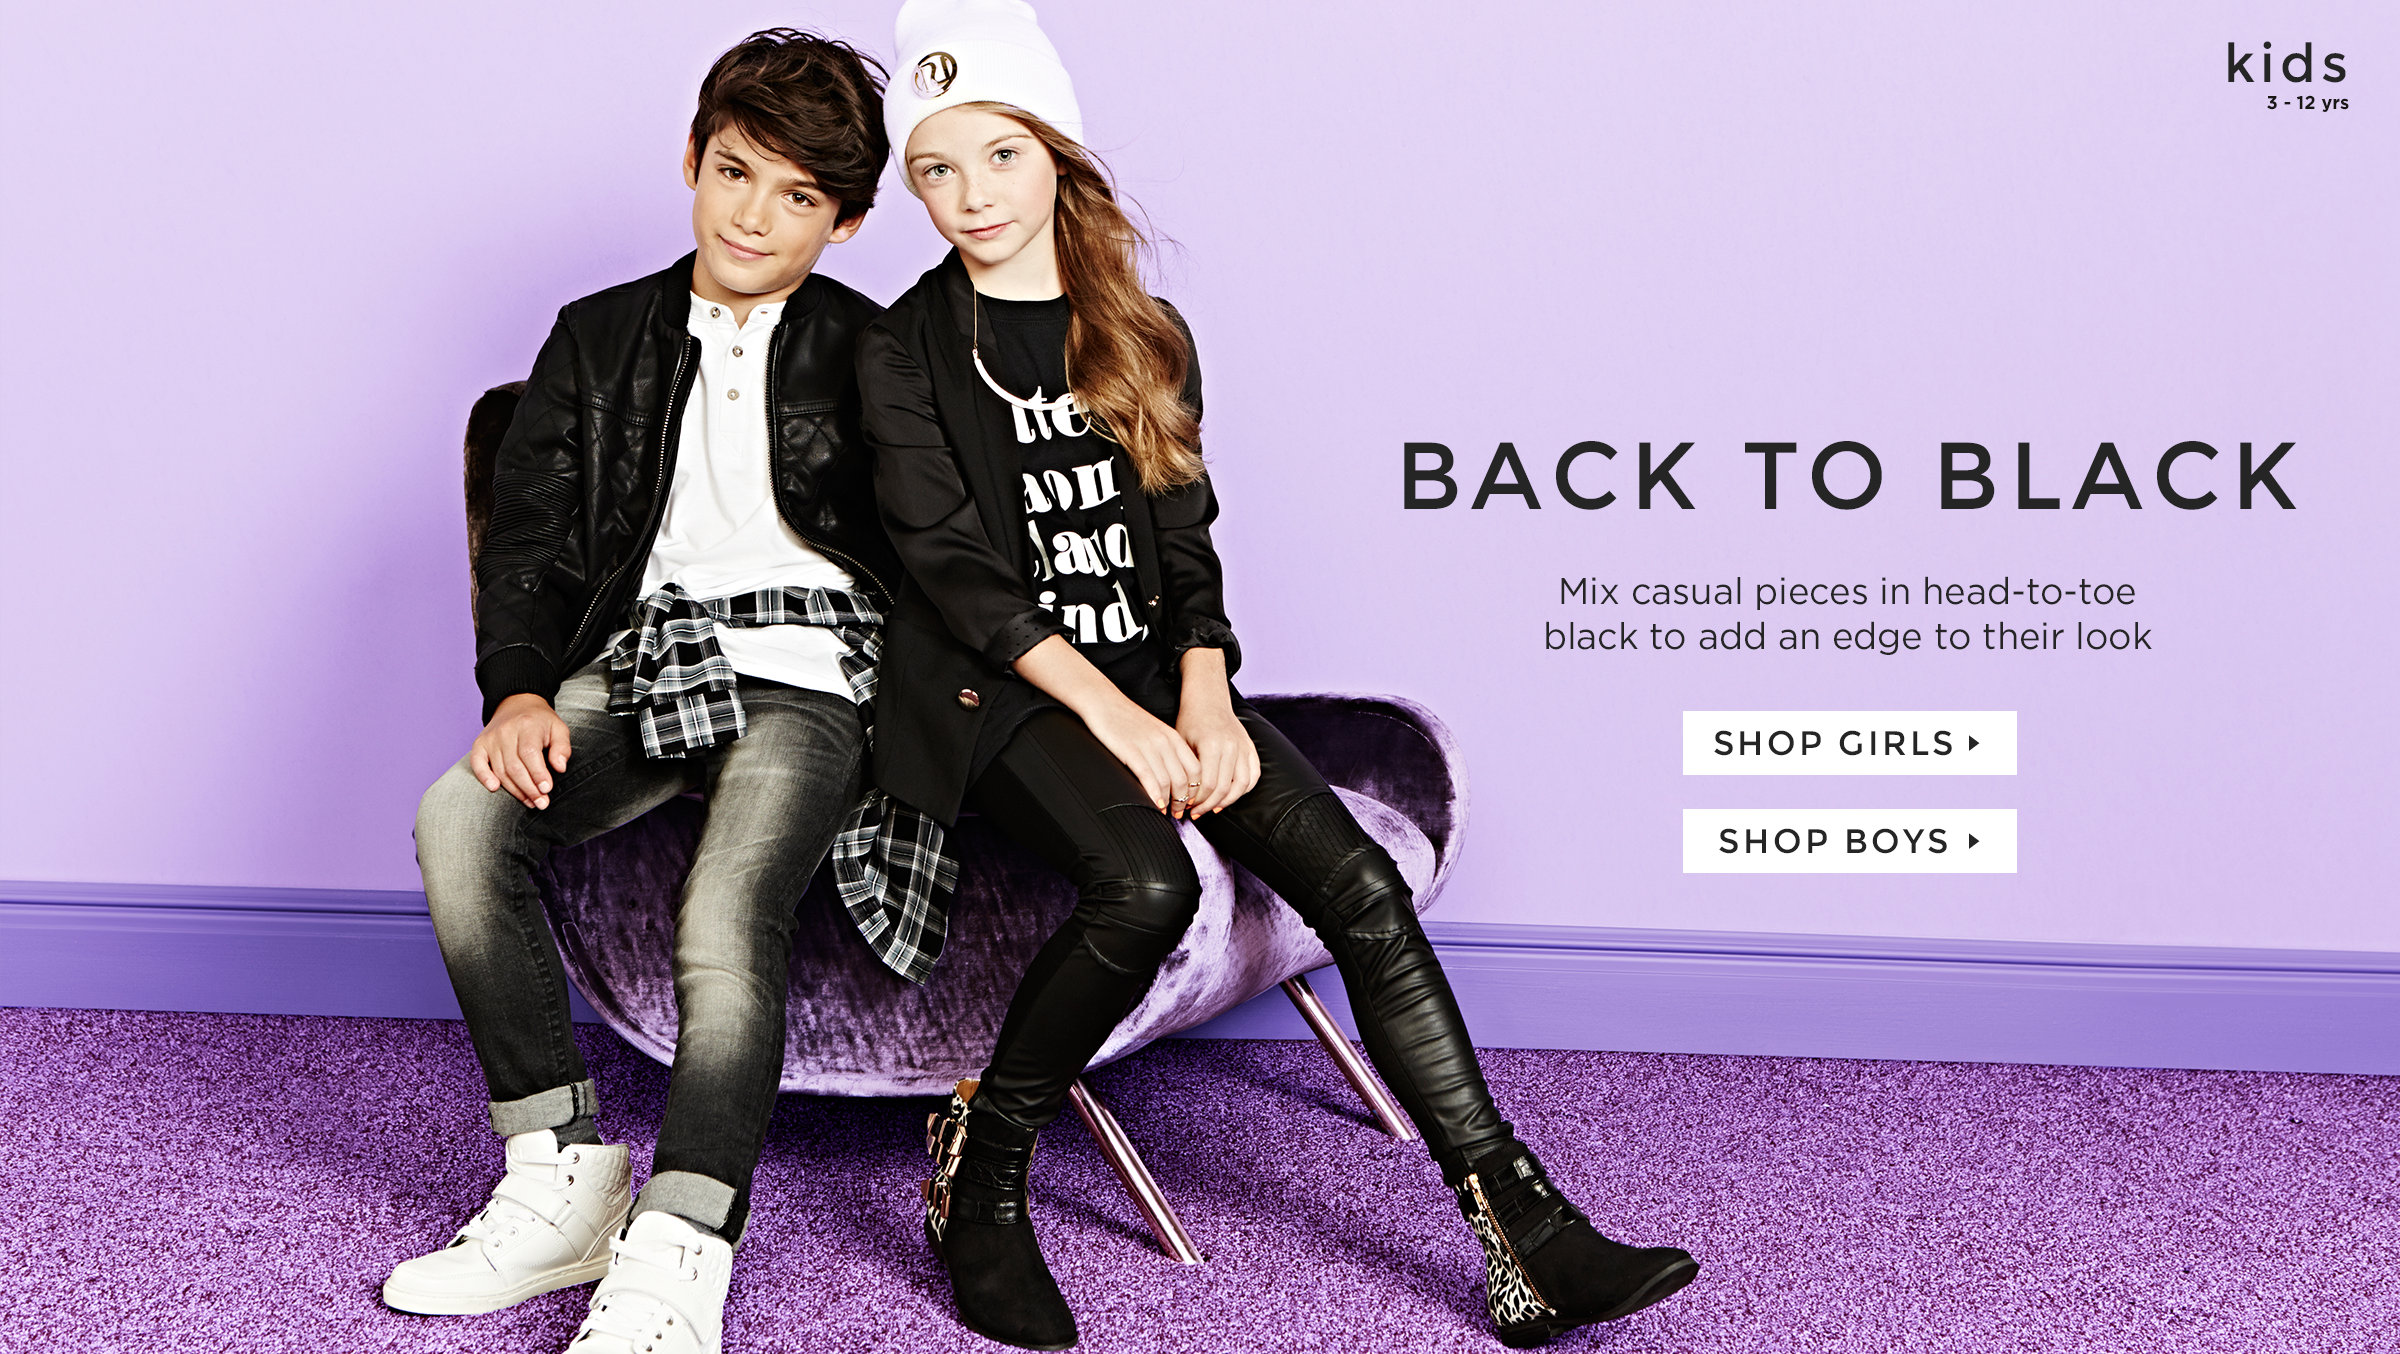 River Island - Fashion Clothing for Women, Men, Boys and Girls